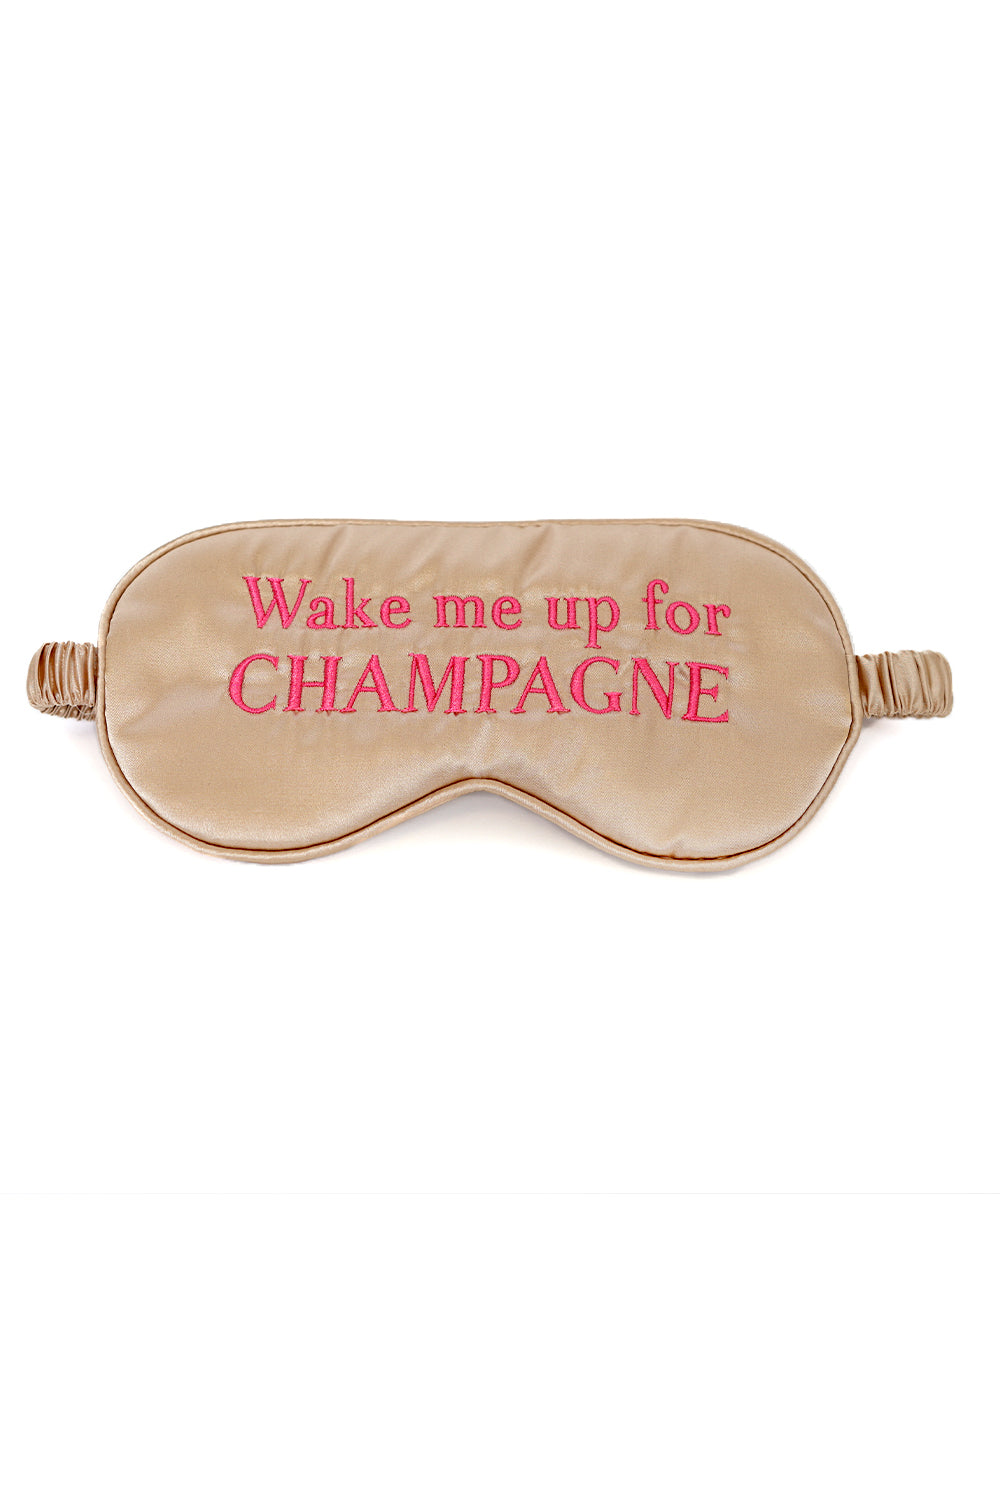 DREAMER EYE MASK - Wake Up Champagne